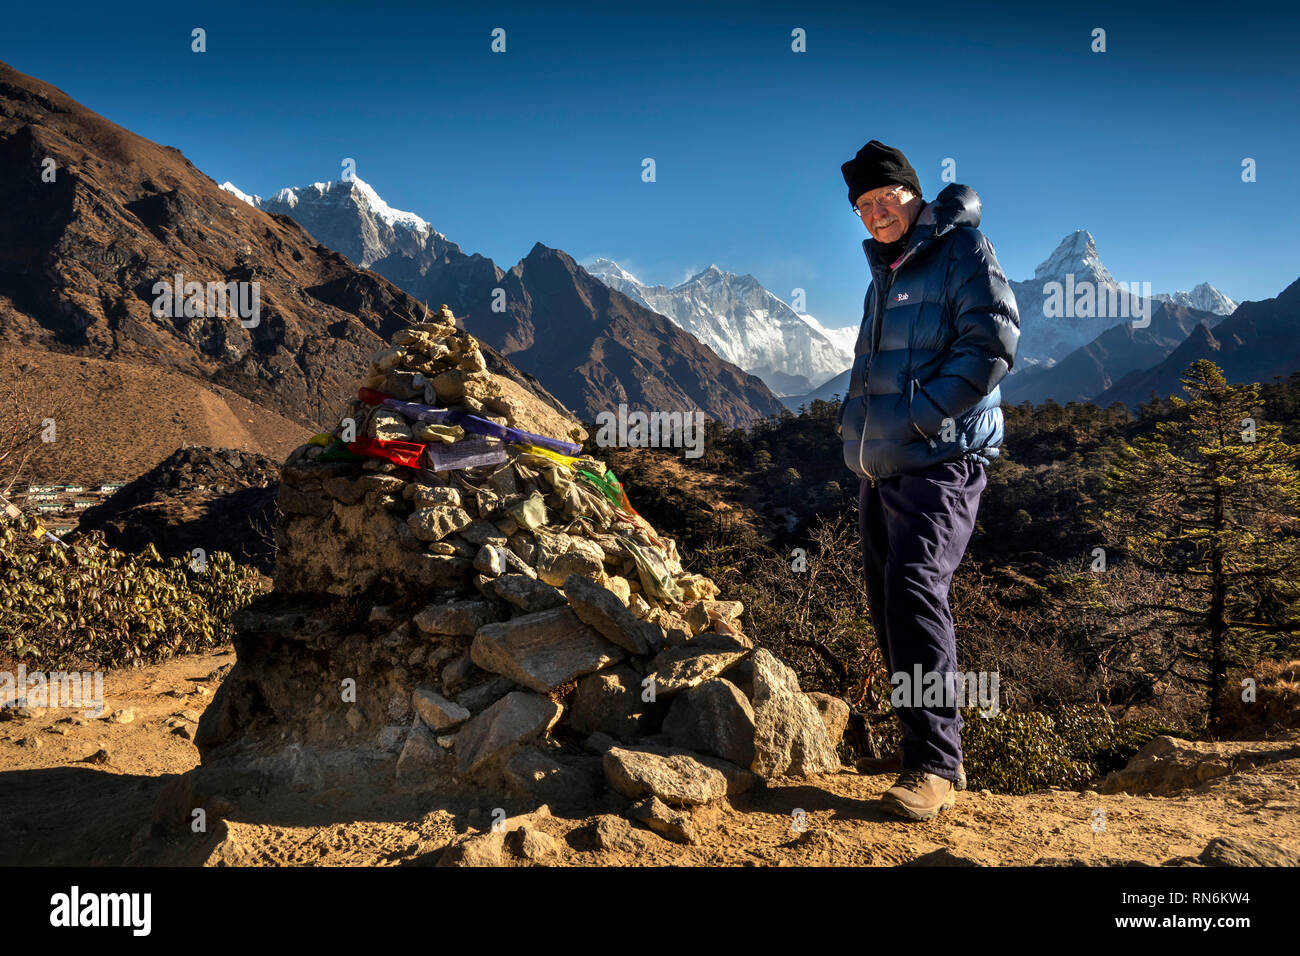 Nepal, Everest Base Camp Trek, Khumjung, senior male tourist at prayer flags tied to rough cairn of stones on mountain path - Stock Image